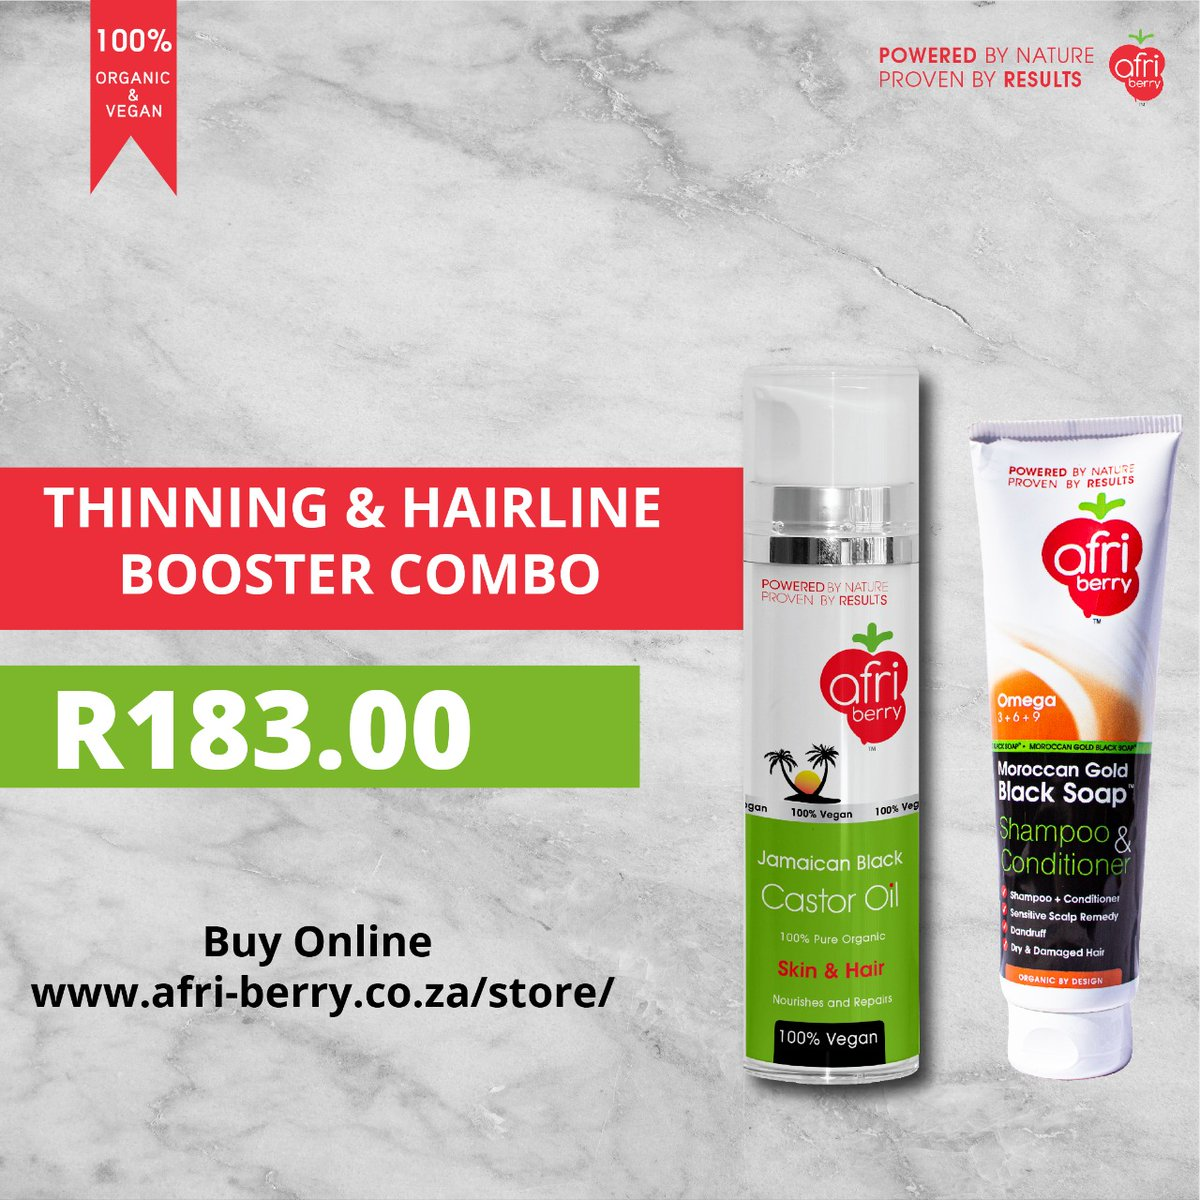 Visit our online store , choose combo that you like @affordableprice, all you need for your skincare and hair is right here @Afri_berry  #GirlsTalkZA #GirlsBuyZA #onlineshopping #Staysafe #StayHomeSaveLives #Covid-19